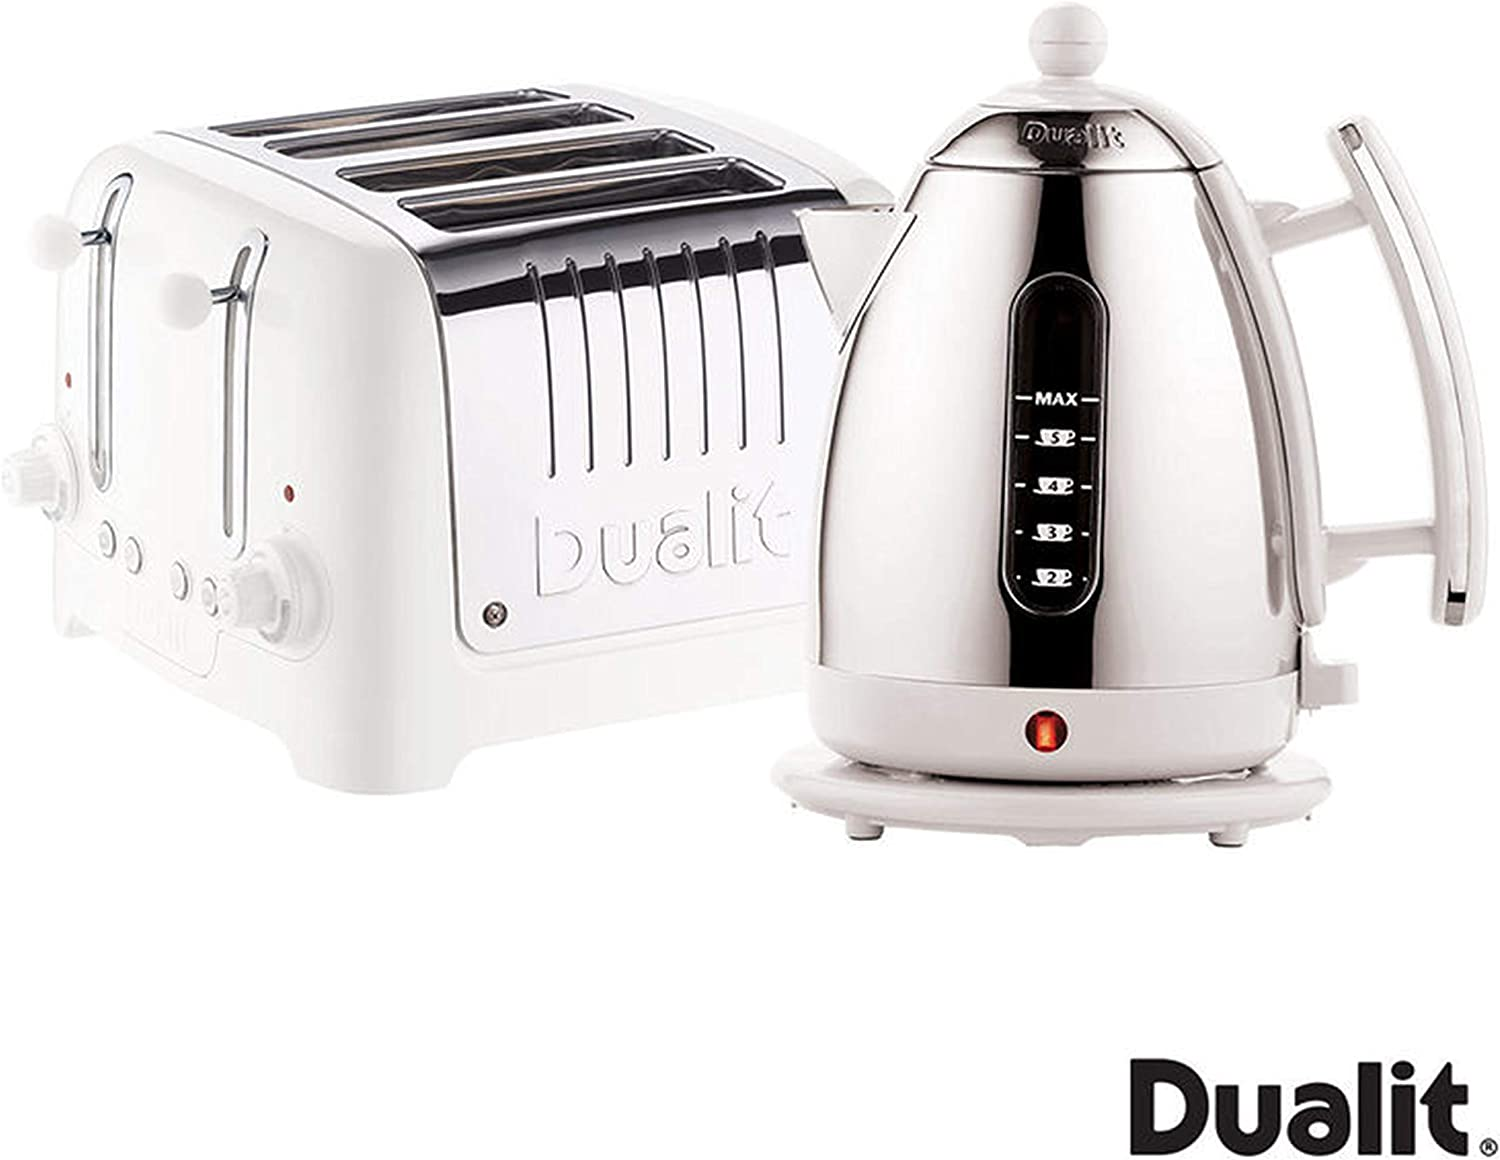 Dualit Lite Kettle and 4 Slot Toaster